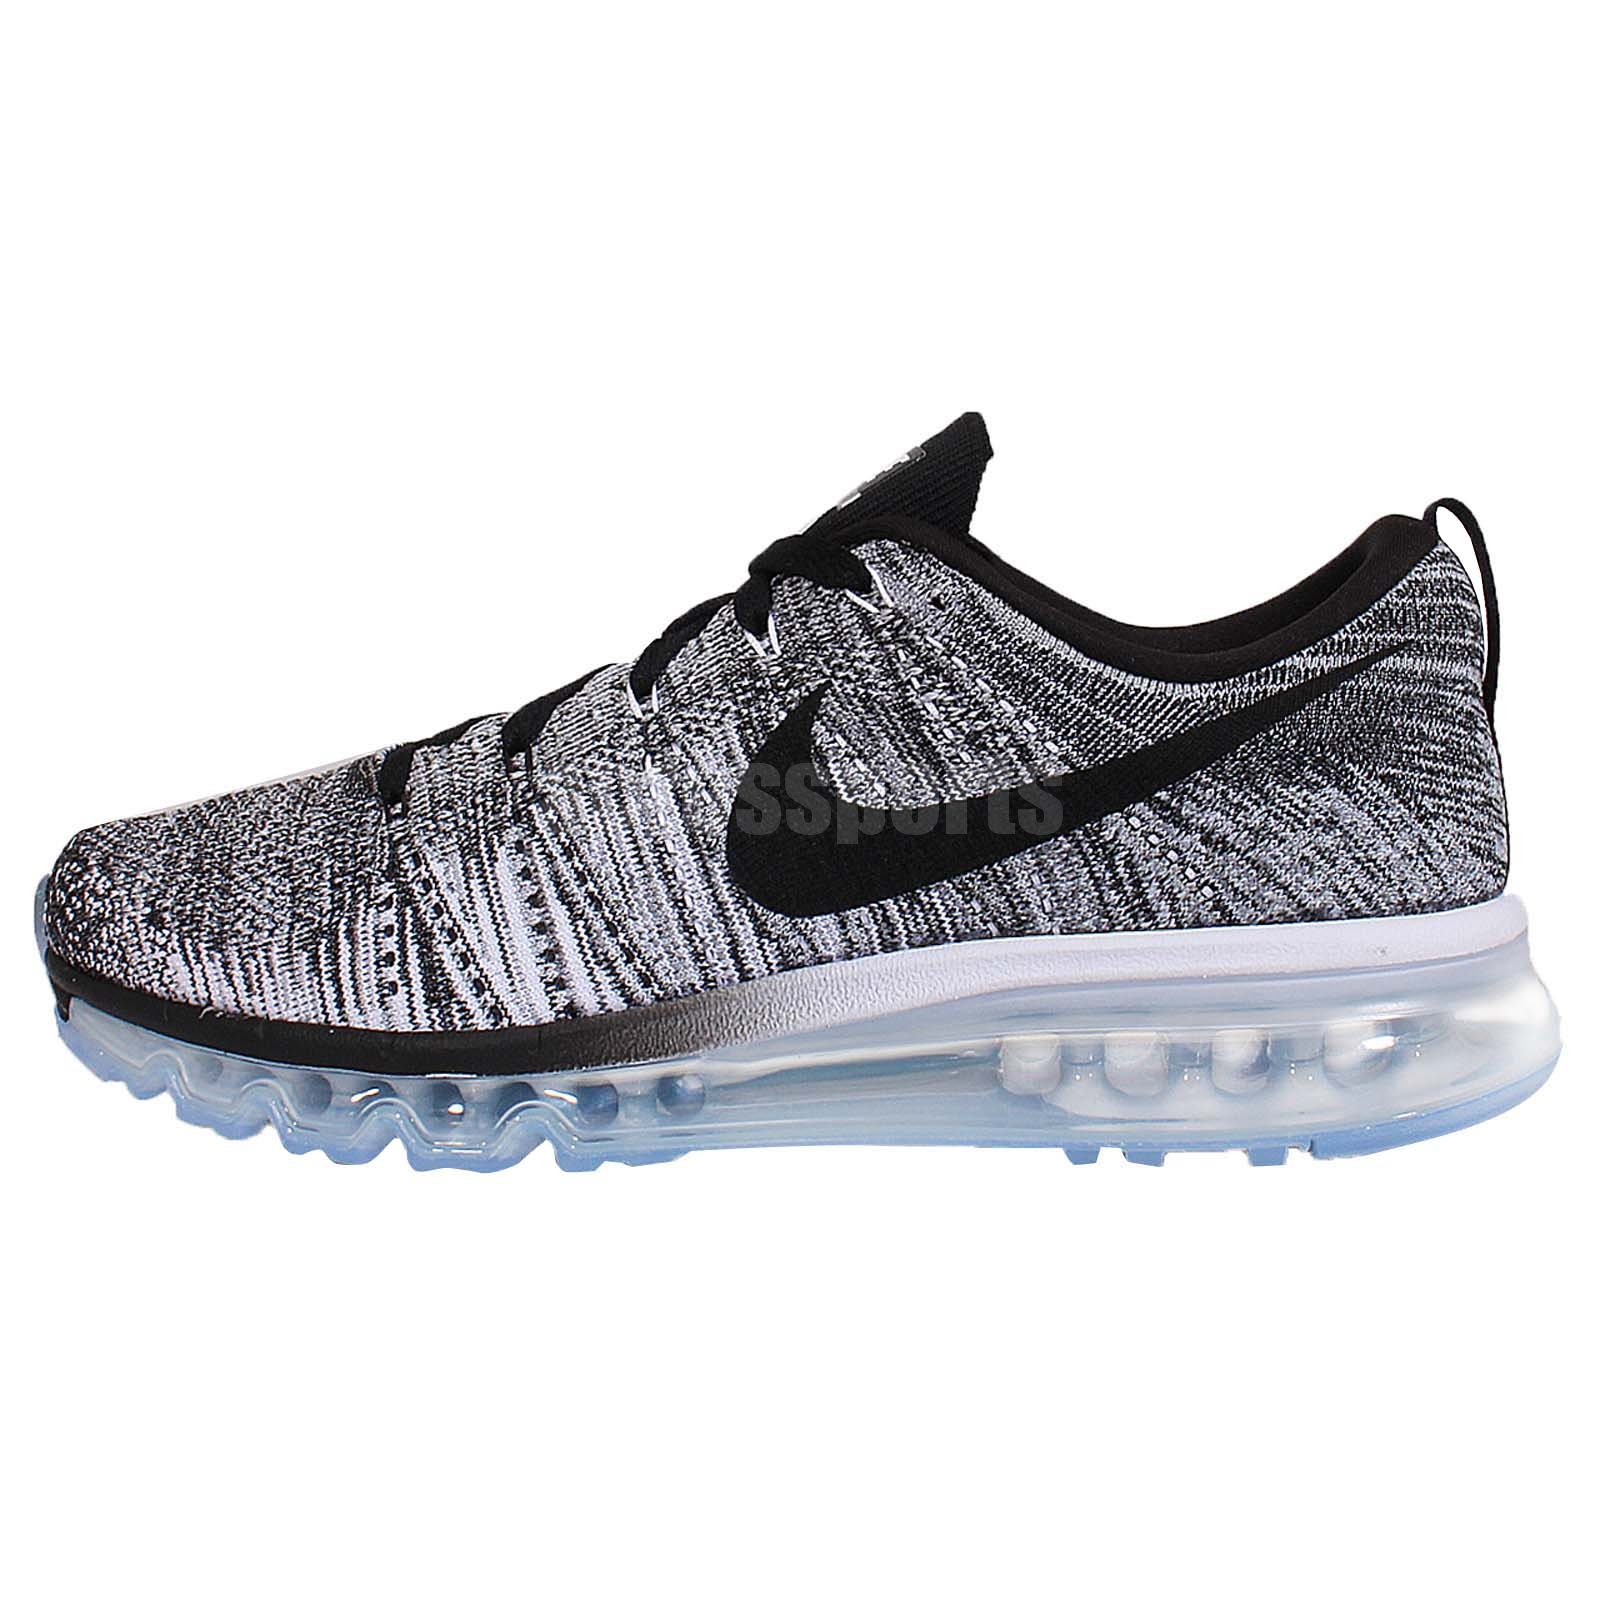 nike flyknit max oreo black white grey mens running shoes